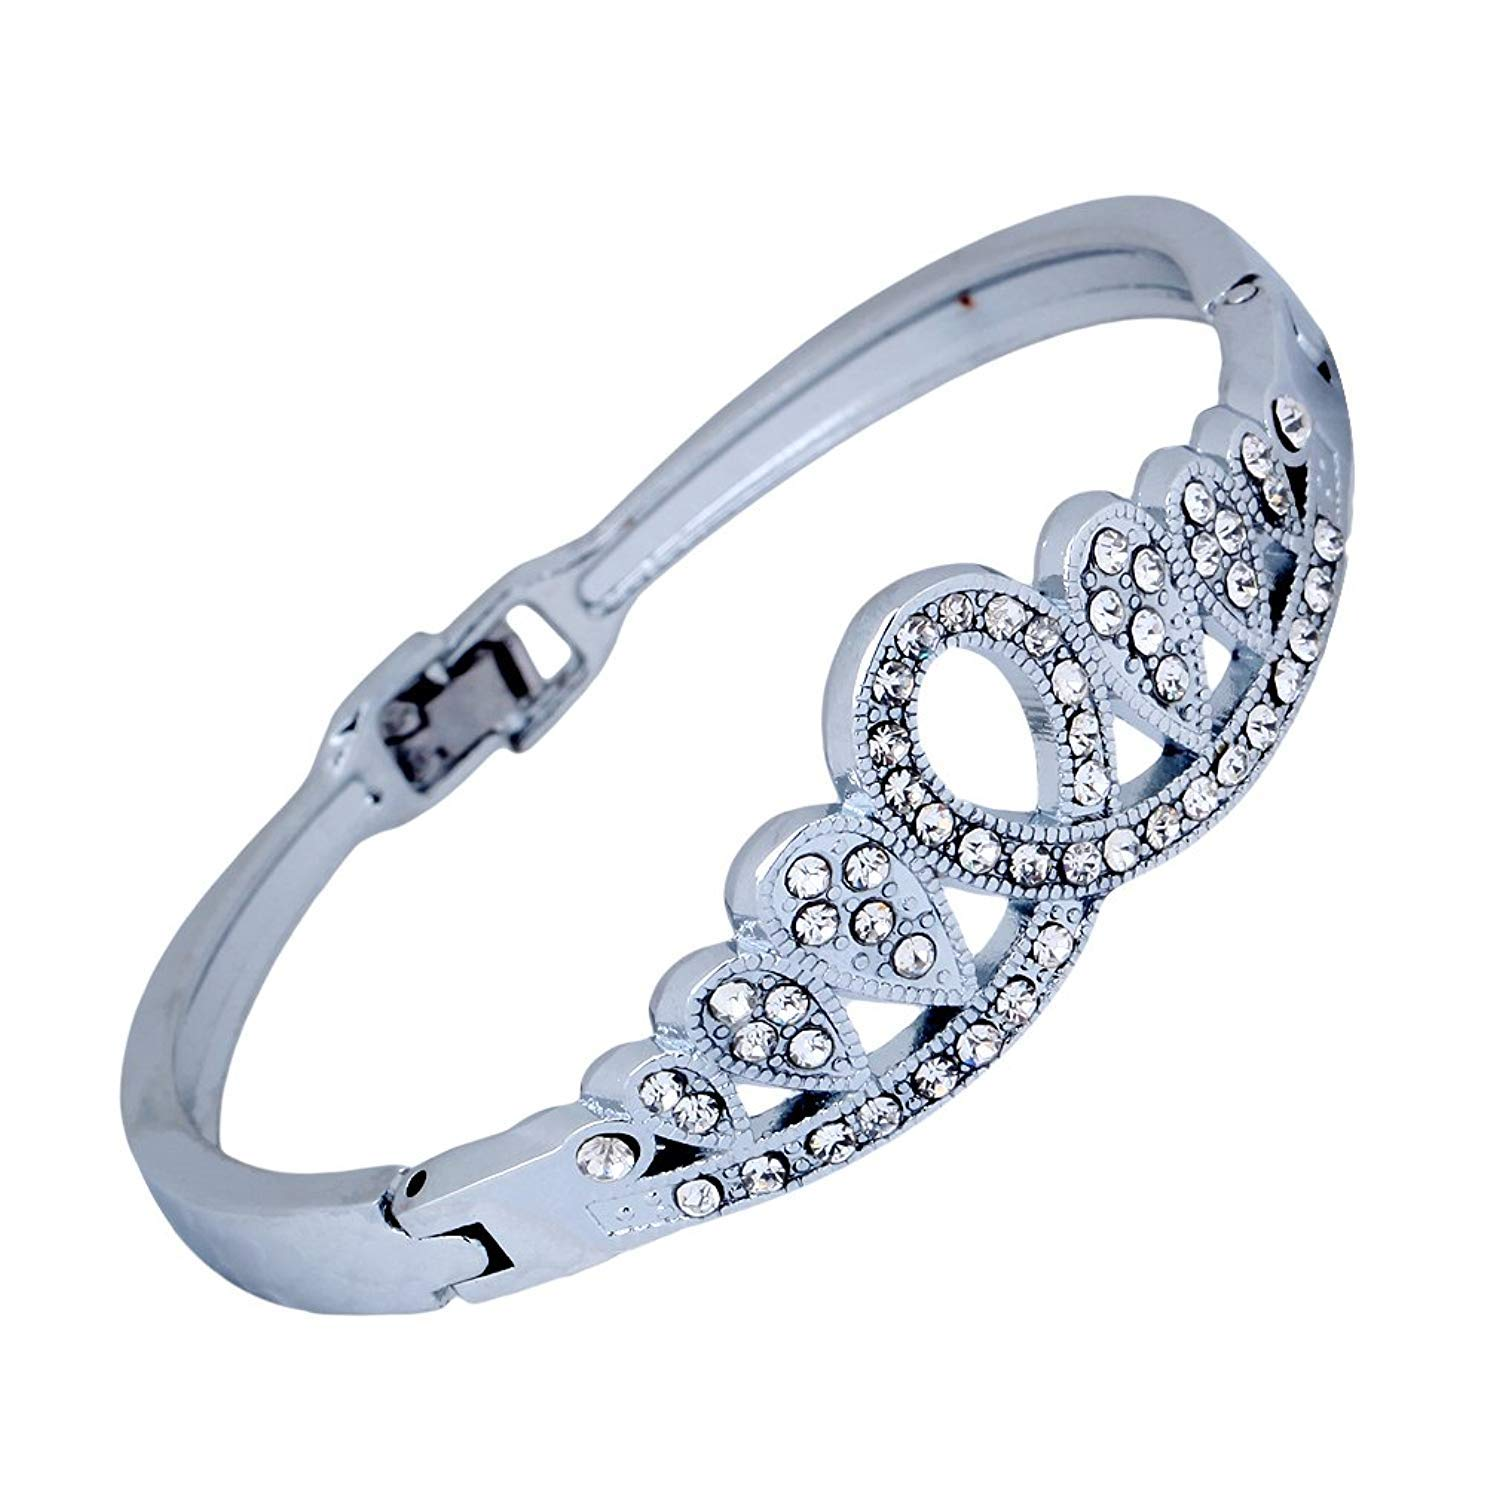 DVANIS Antique Silver Plated Clear Crystal Bangle Bracelet 2.2'' Gift Women